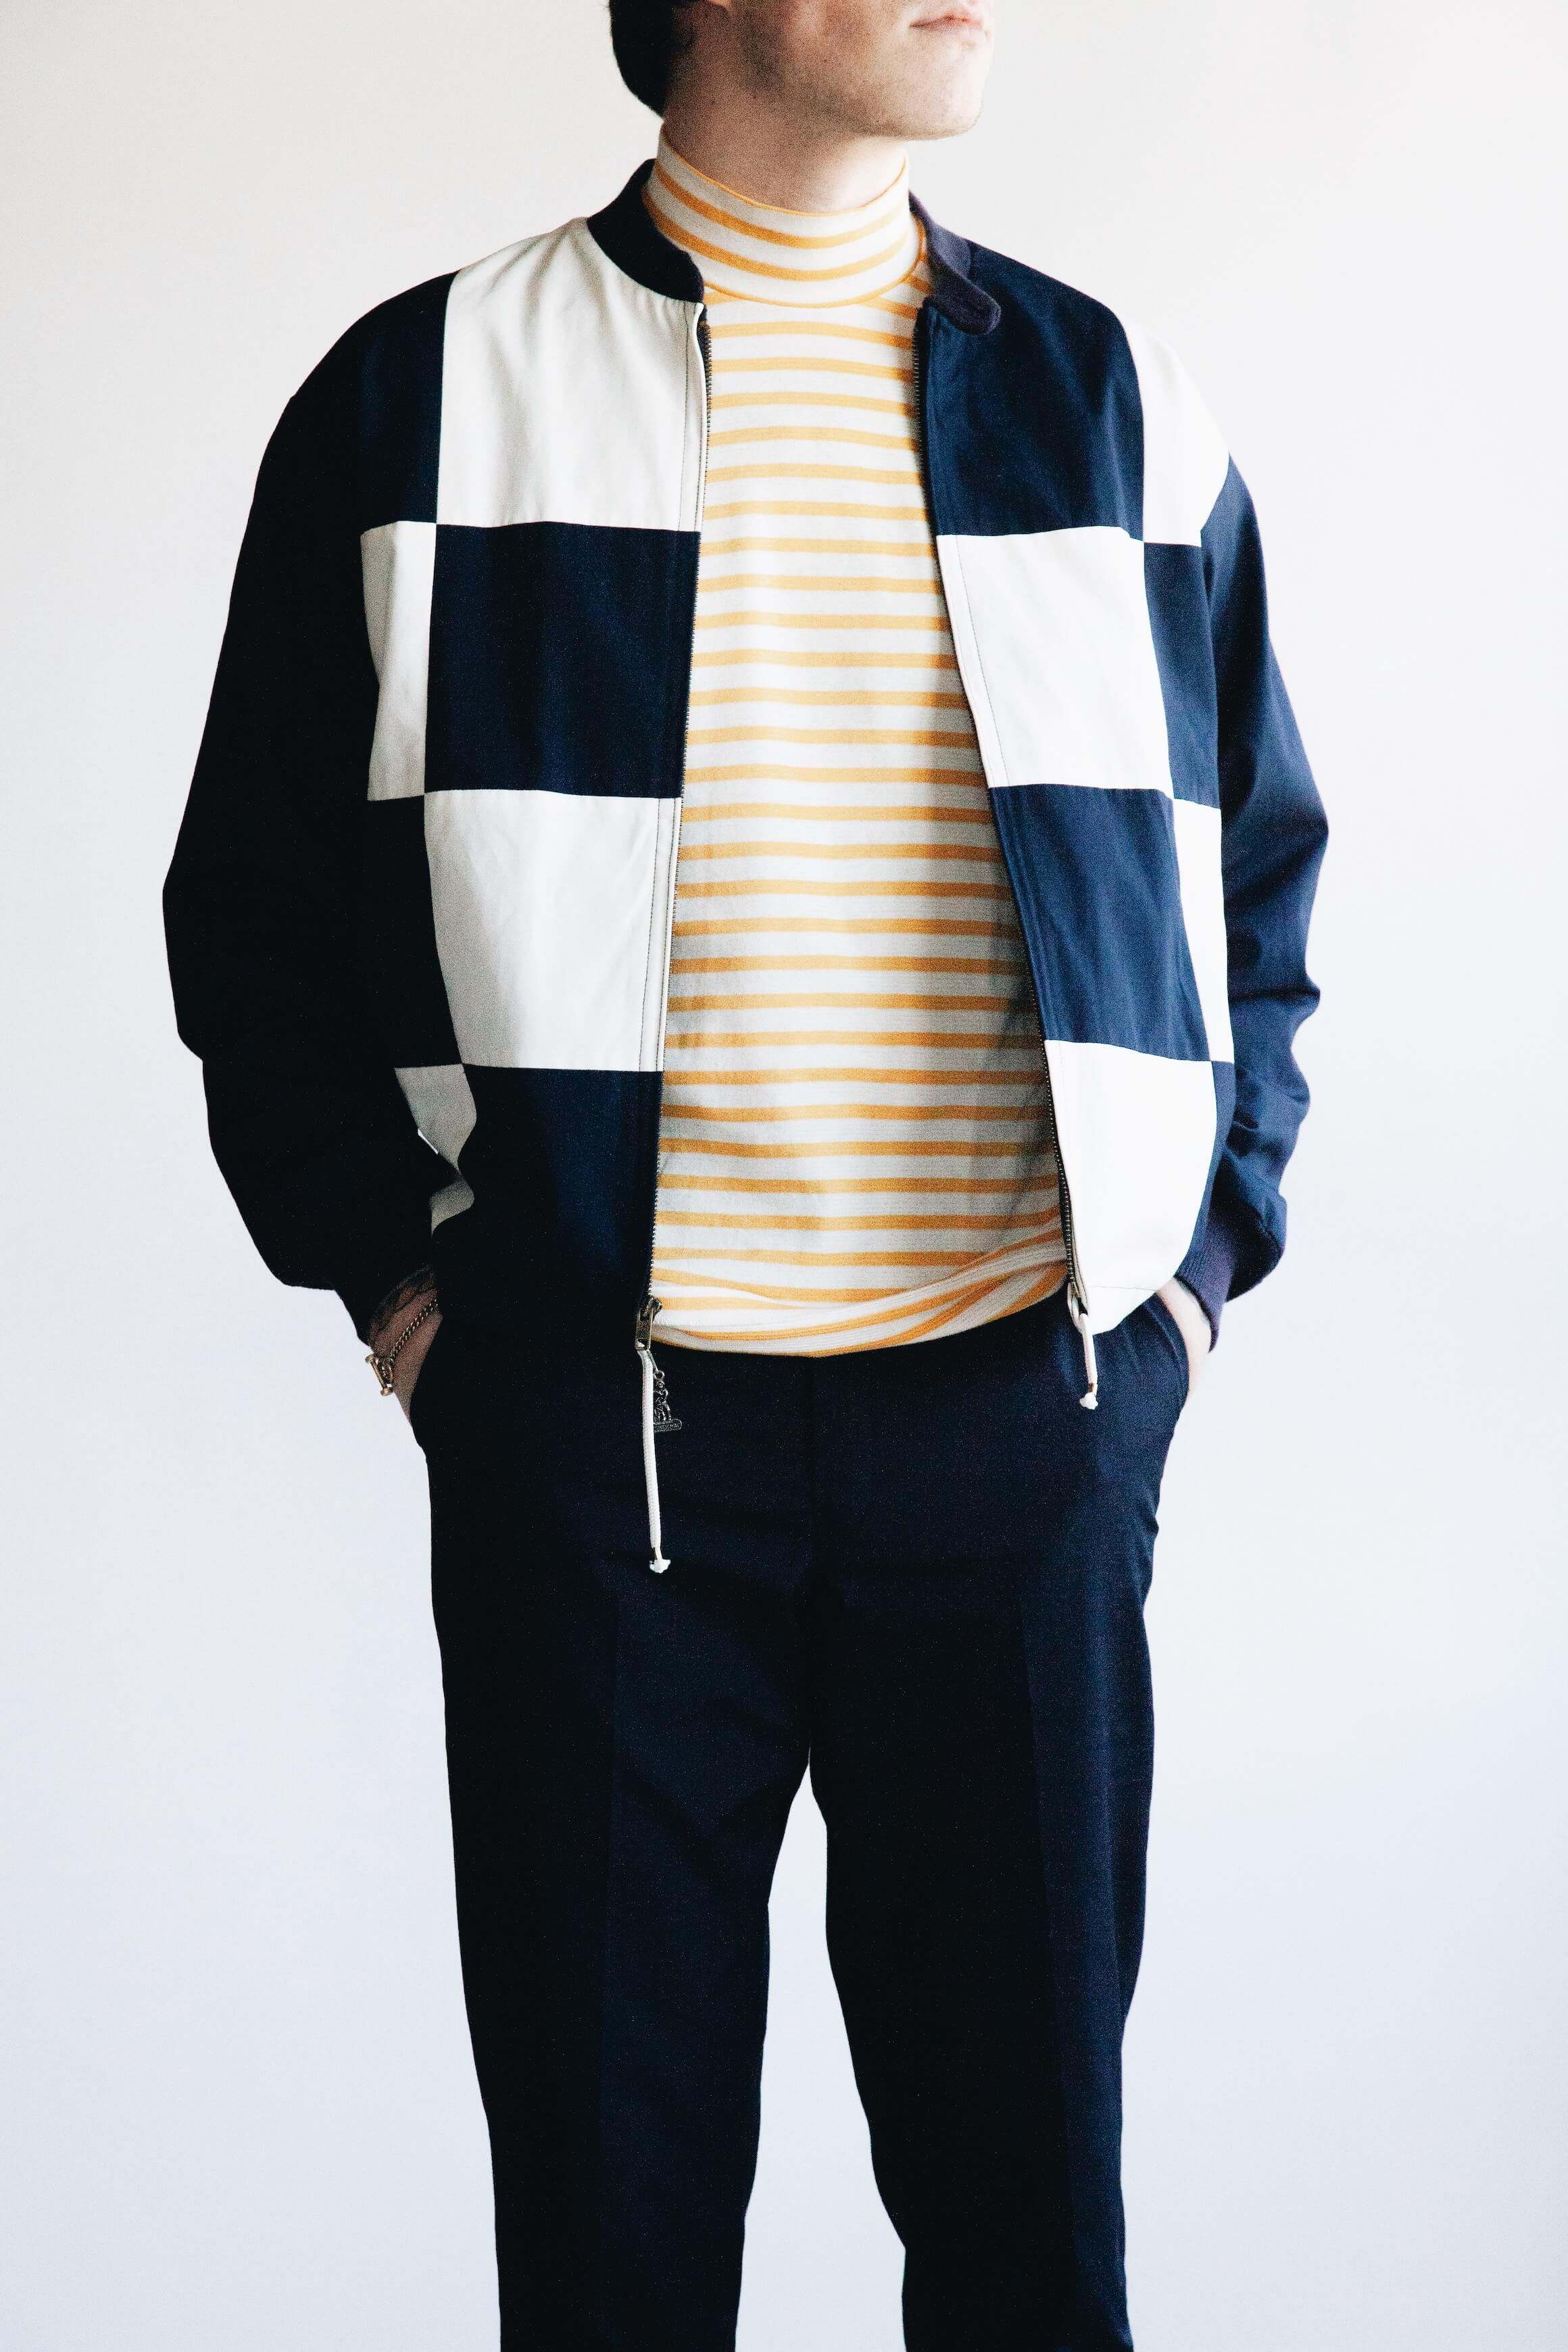 mighty mac boat jacket, anatomica ss mock neck tee, anatomica trim fit pant on body